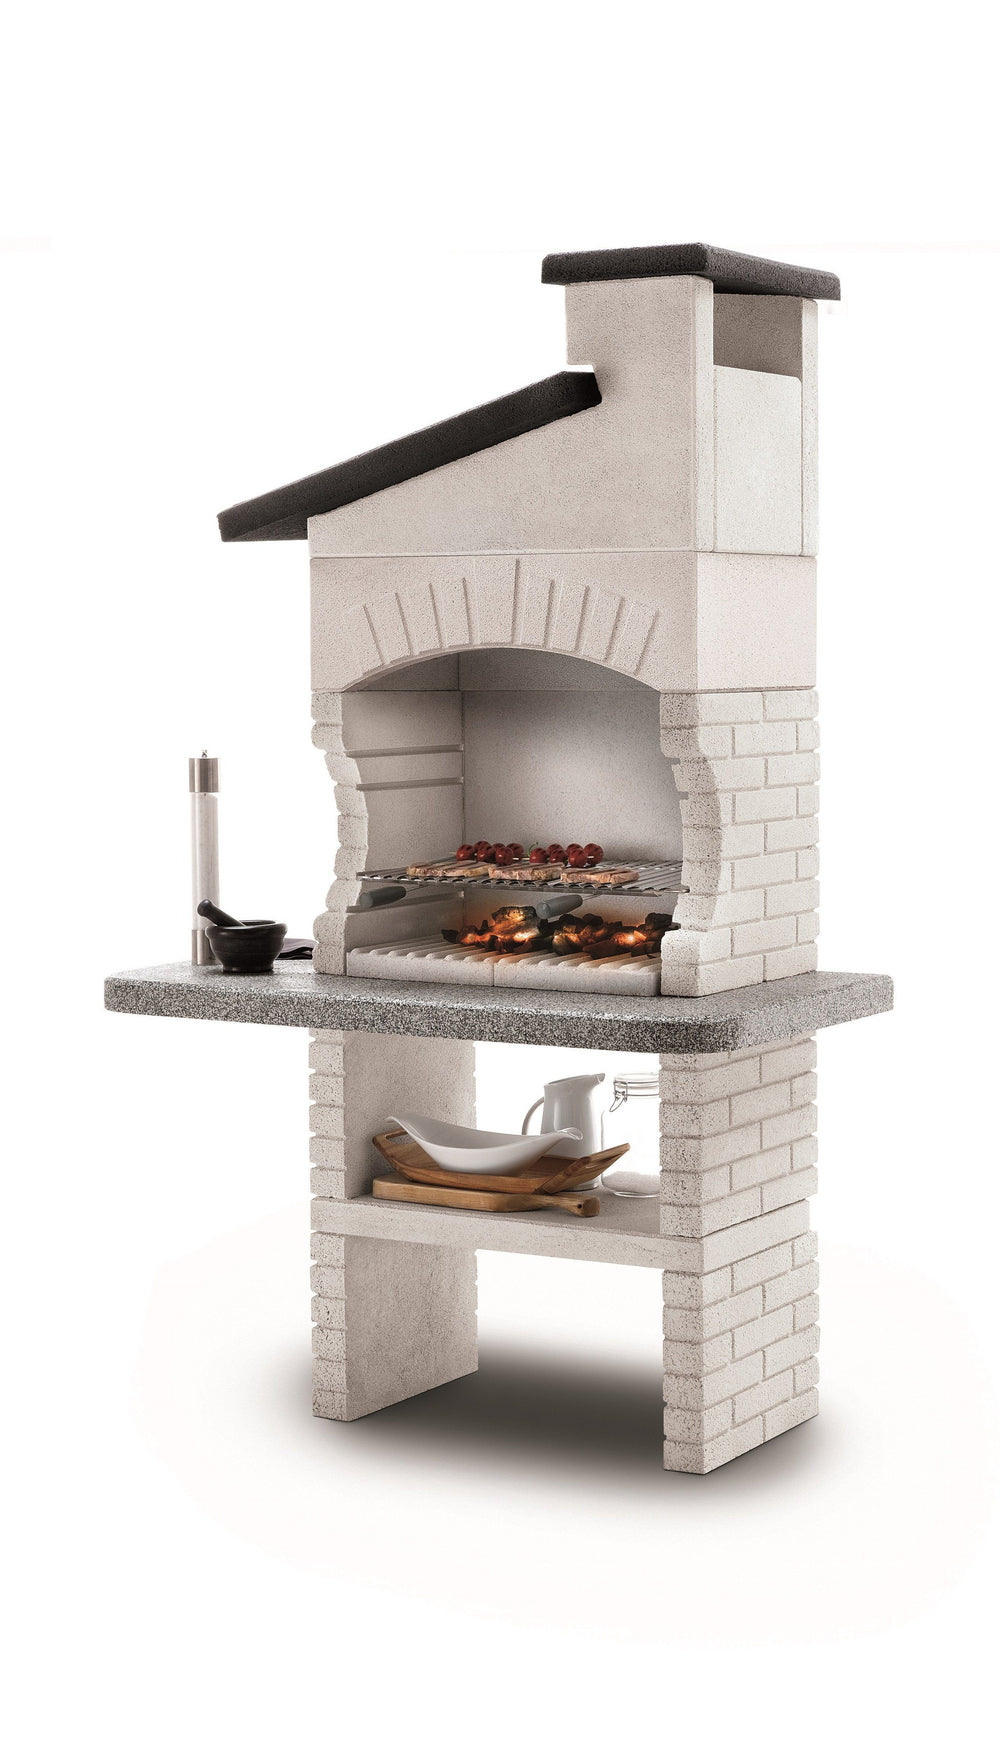 Palazzetti GUANACO 2 Barbecue Outdoor Cooking Grill By Paini Pizza Ovens Paini